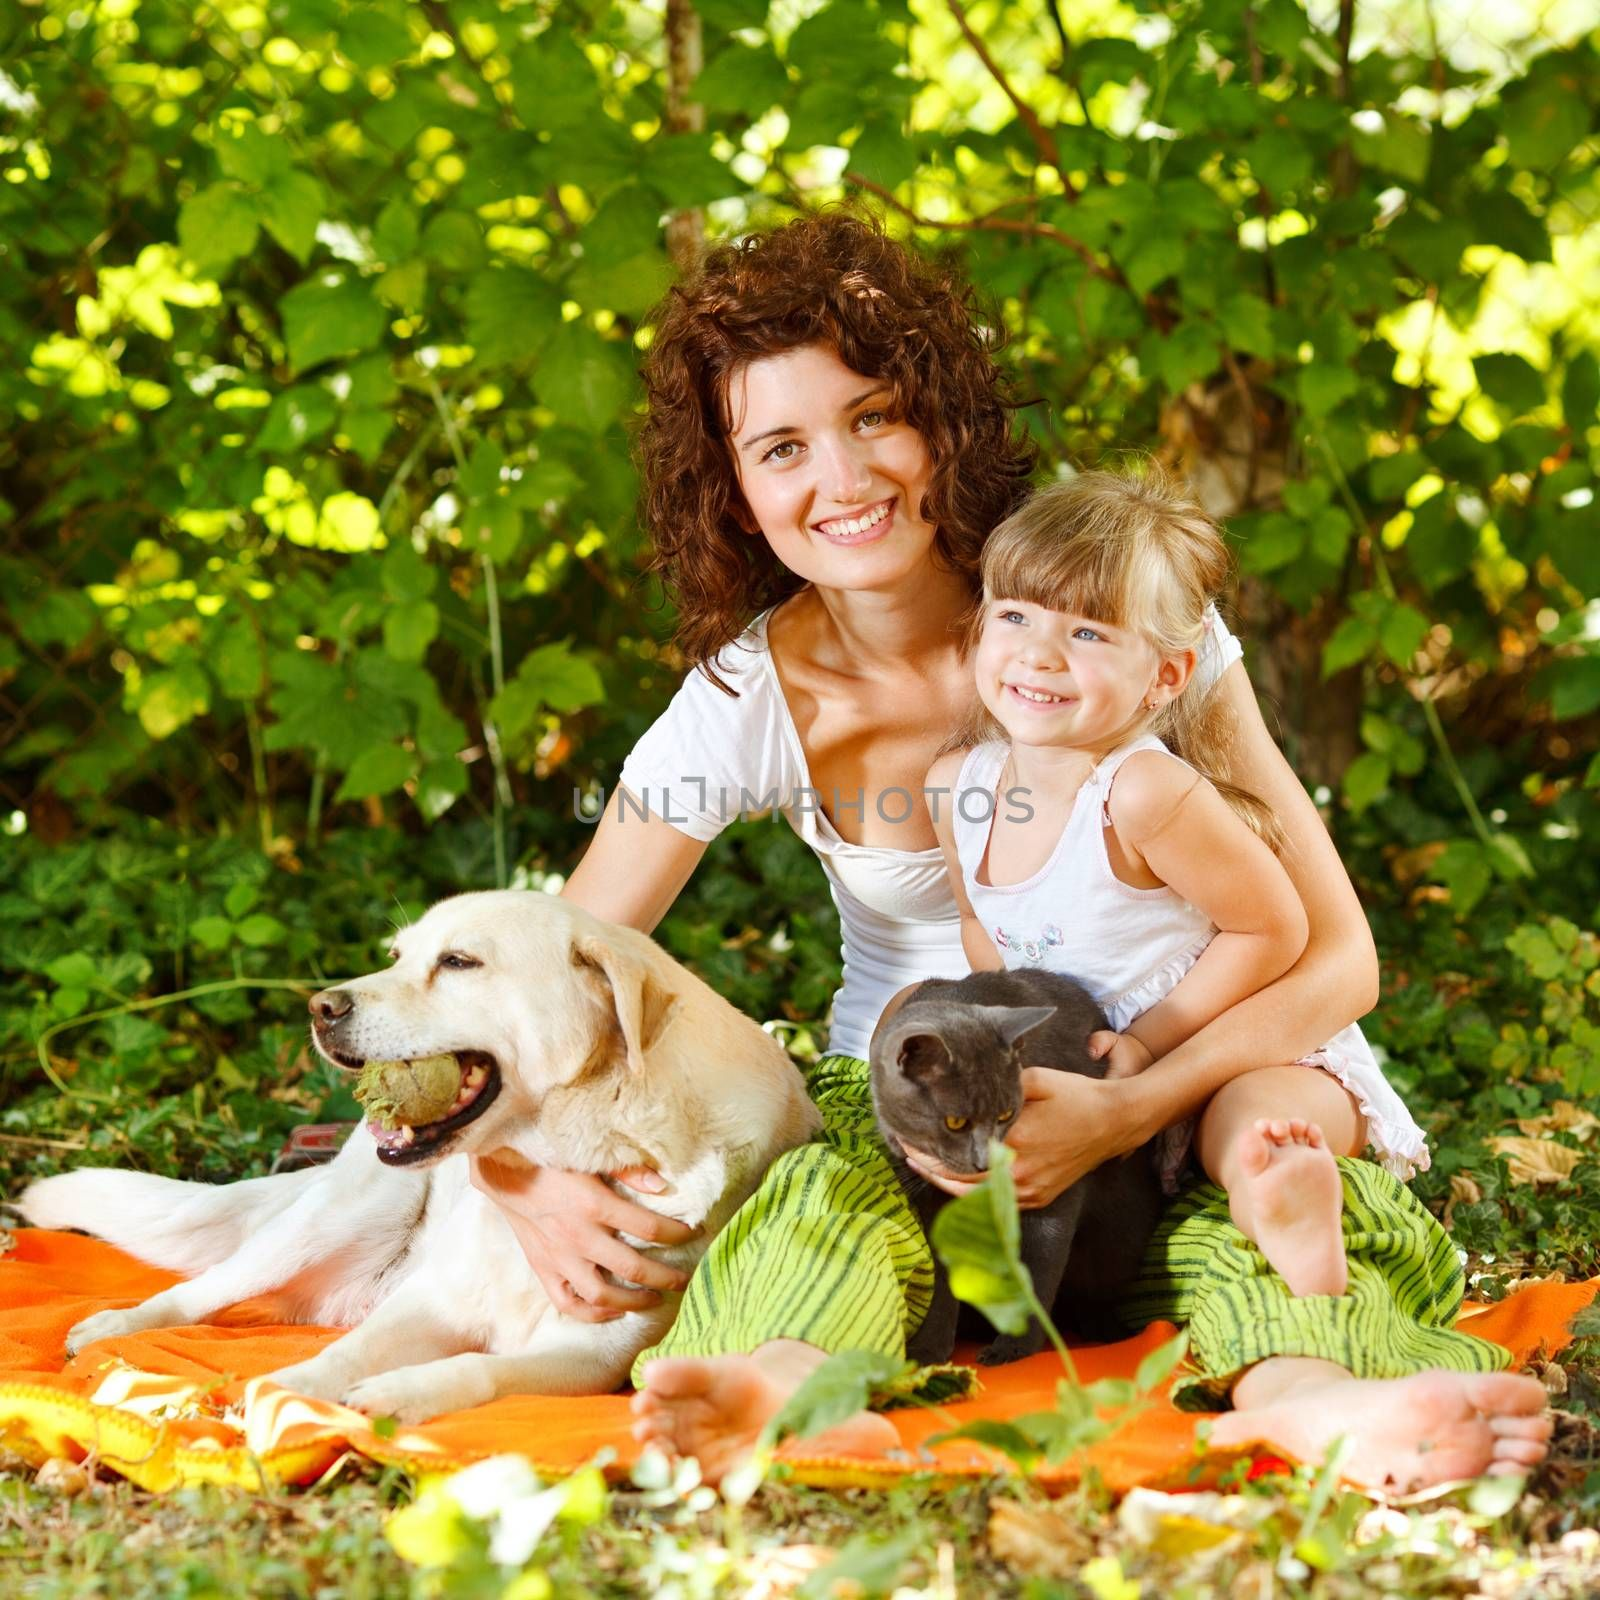 Beautiful mother and daughter relaxing in nature with pets